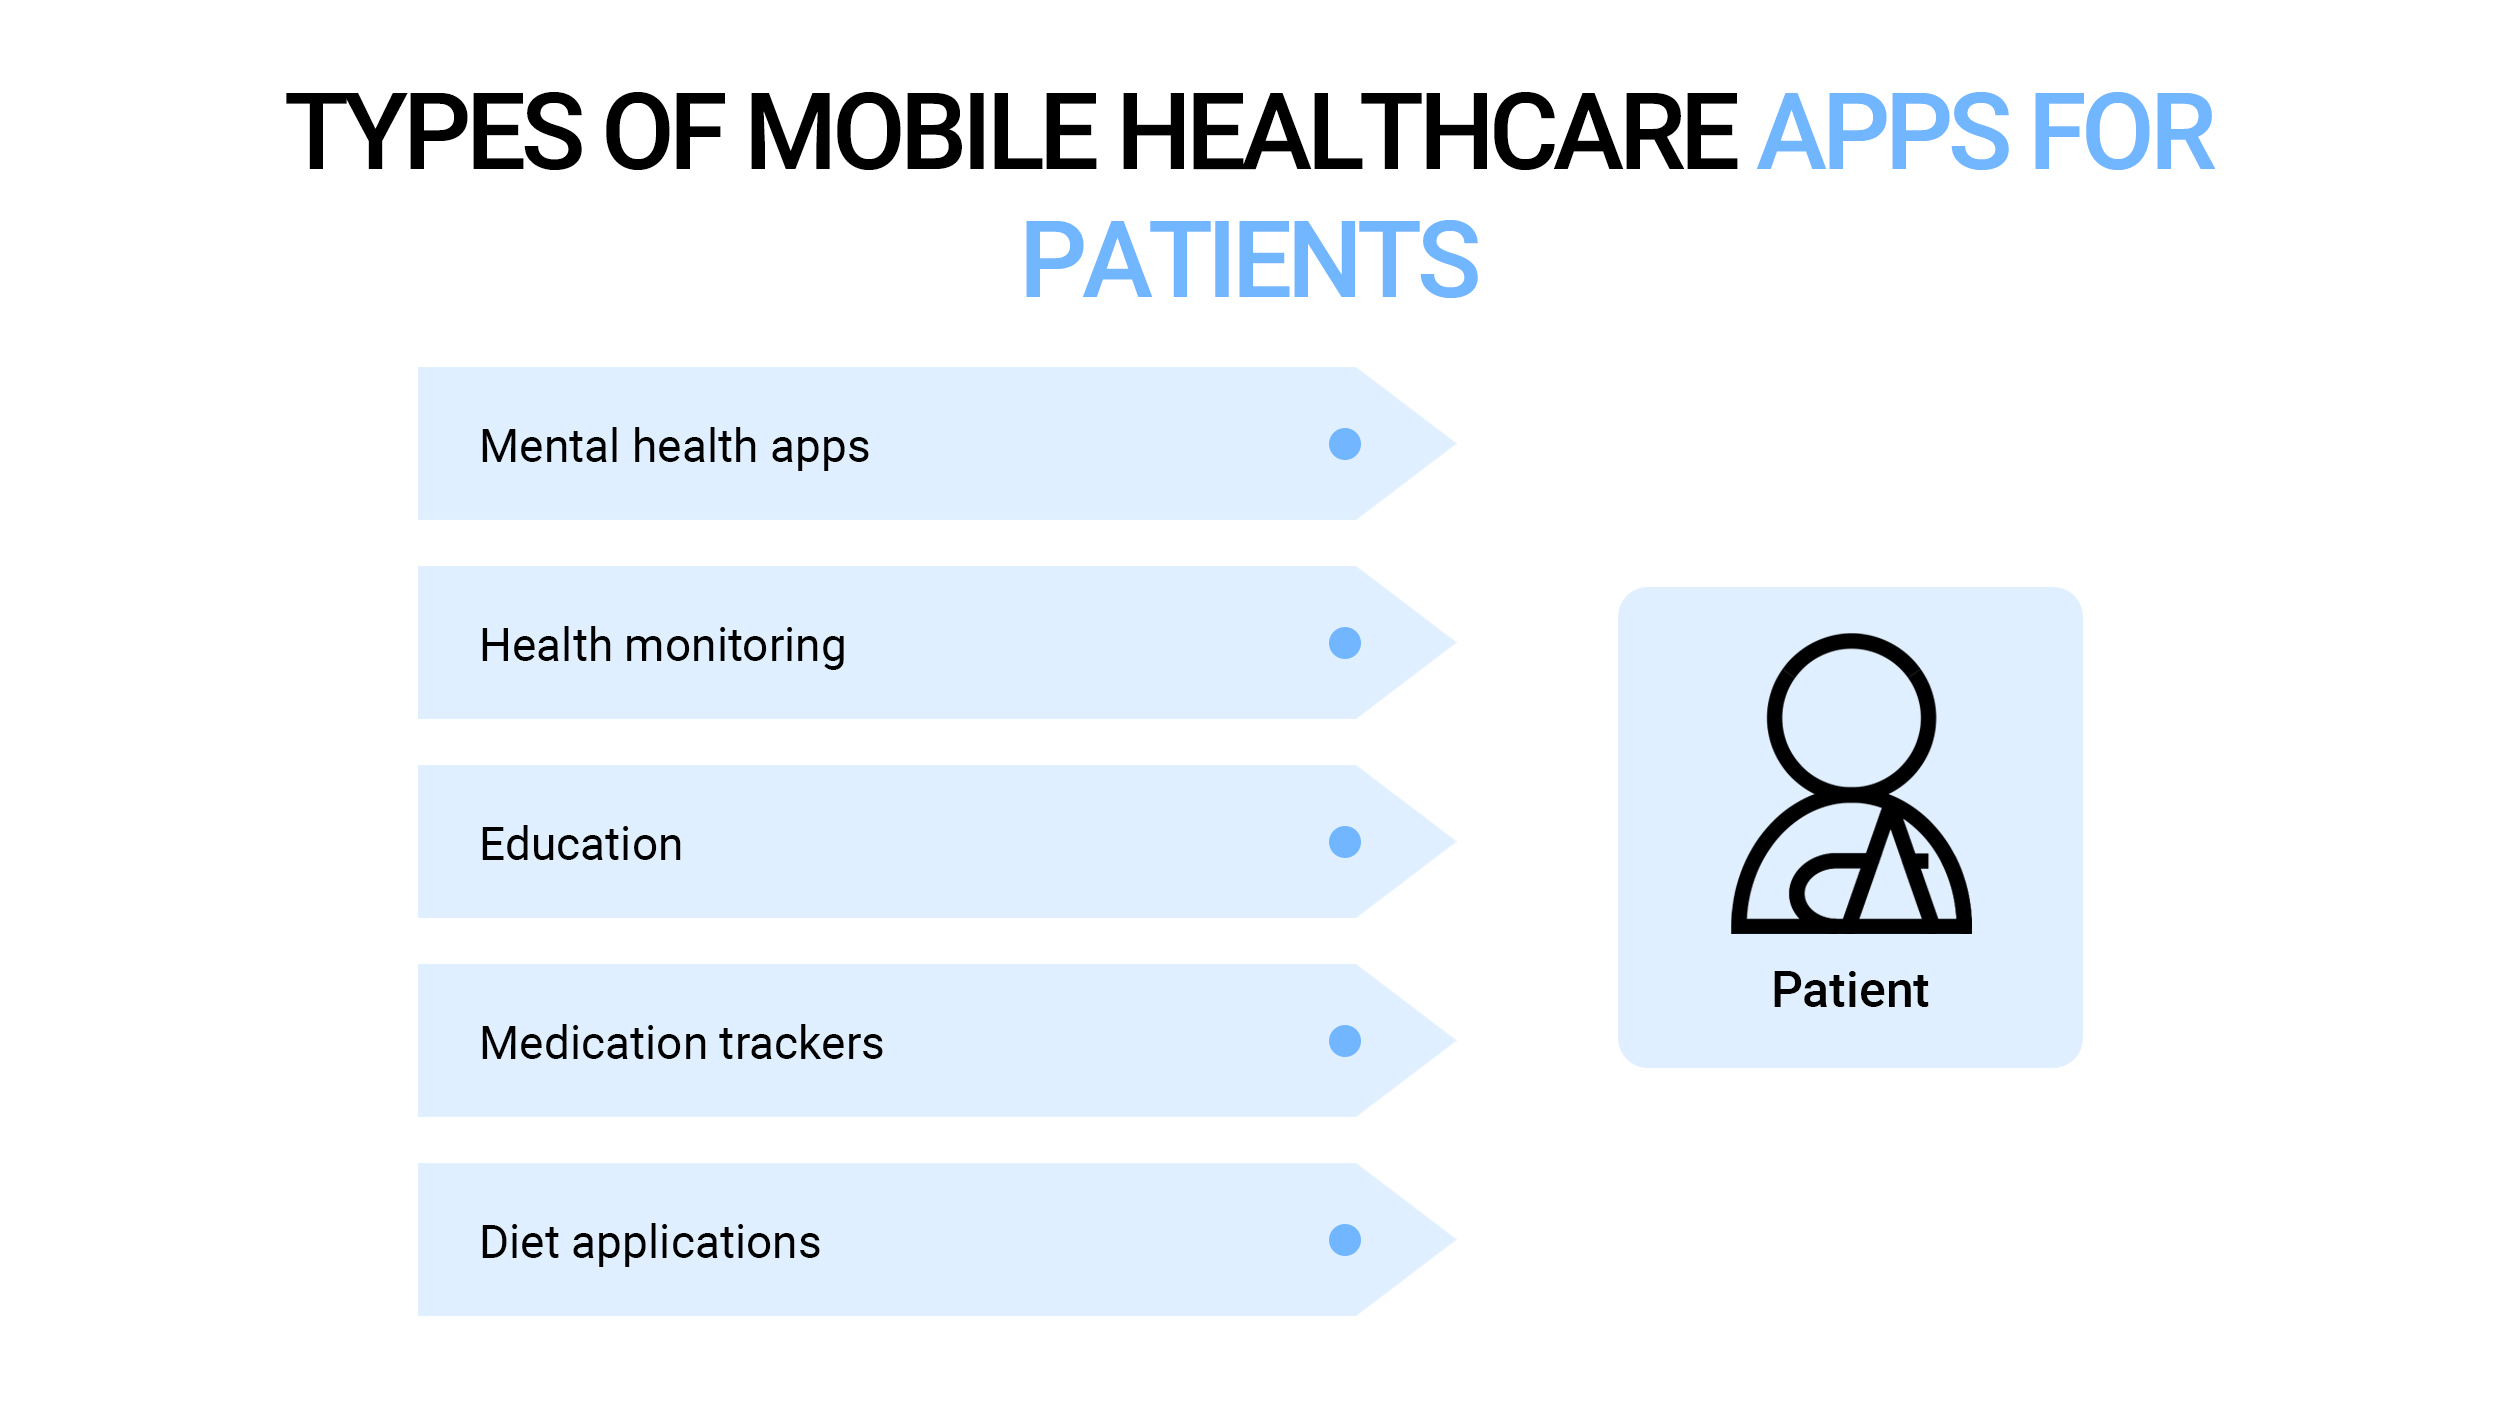 Types of mobile healthcare apps for patients